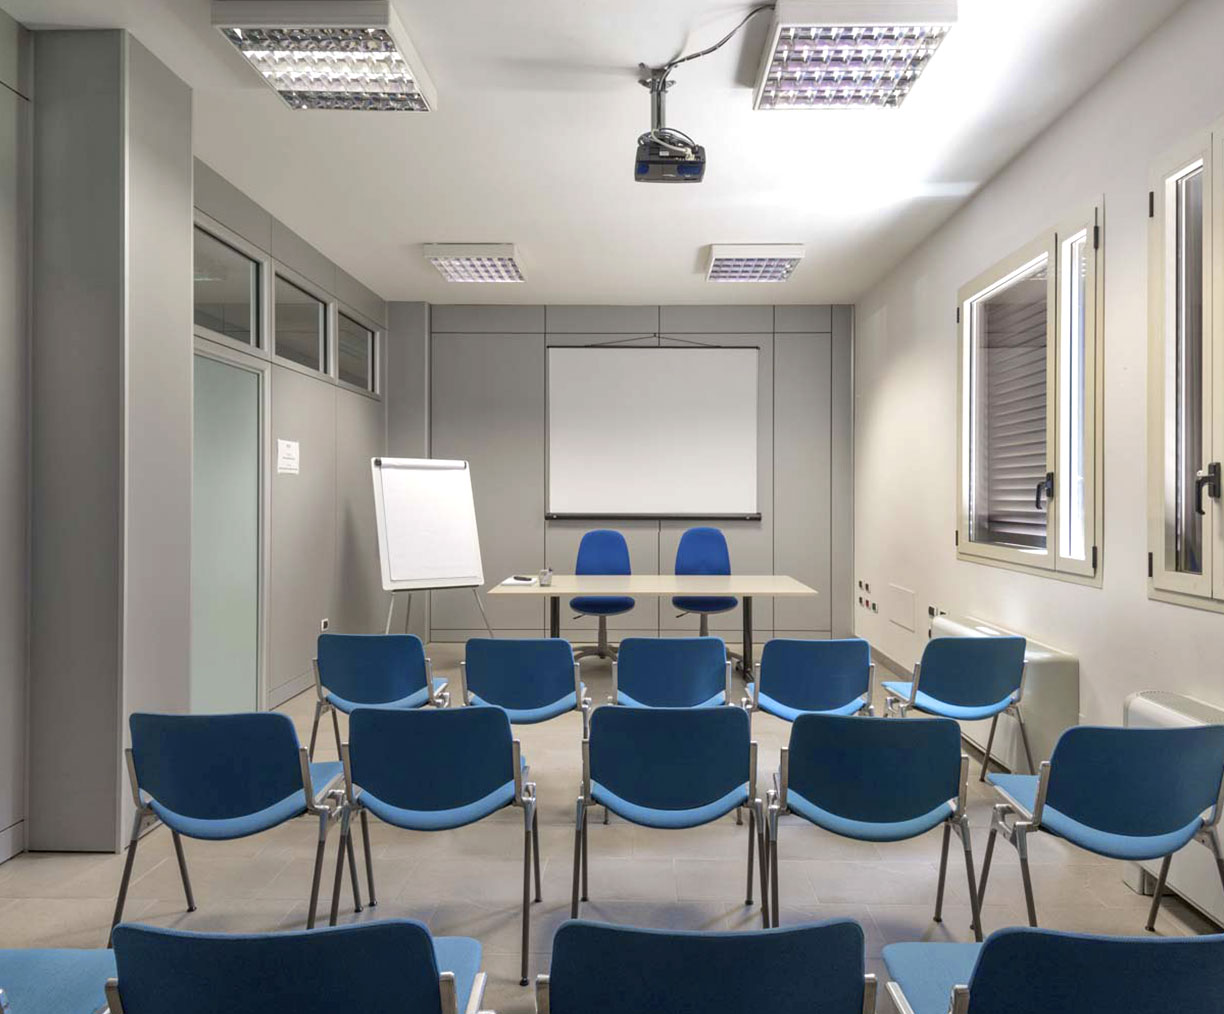 Meeting room standard with whiteboard and video projector